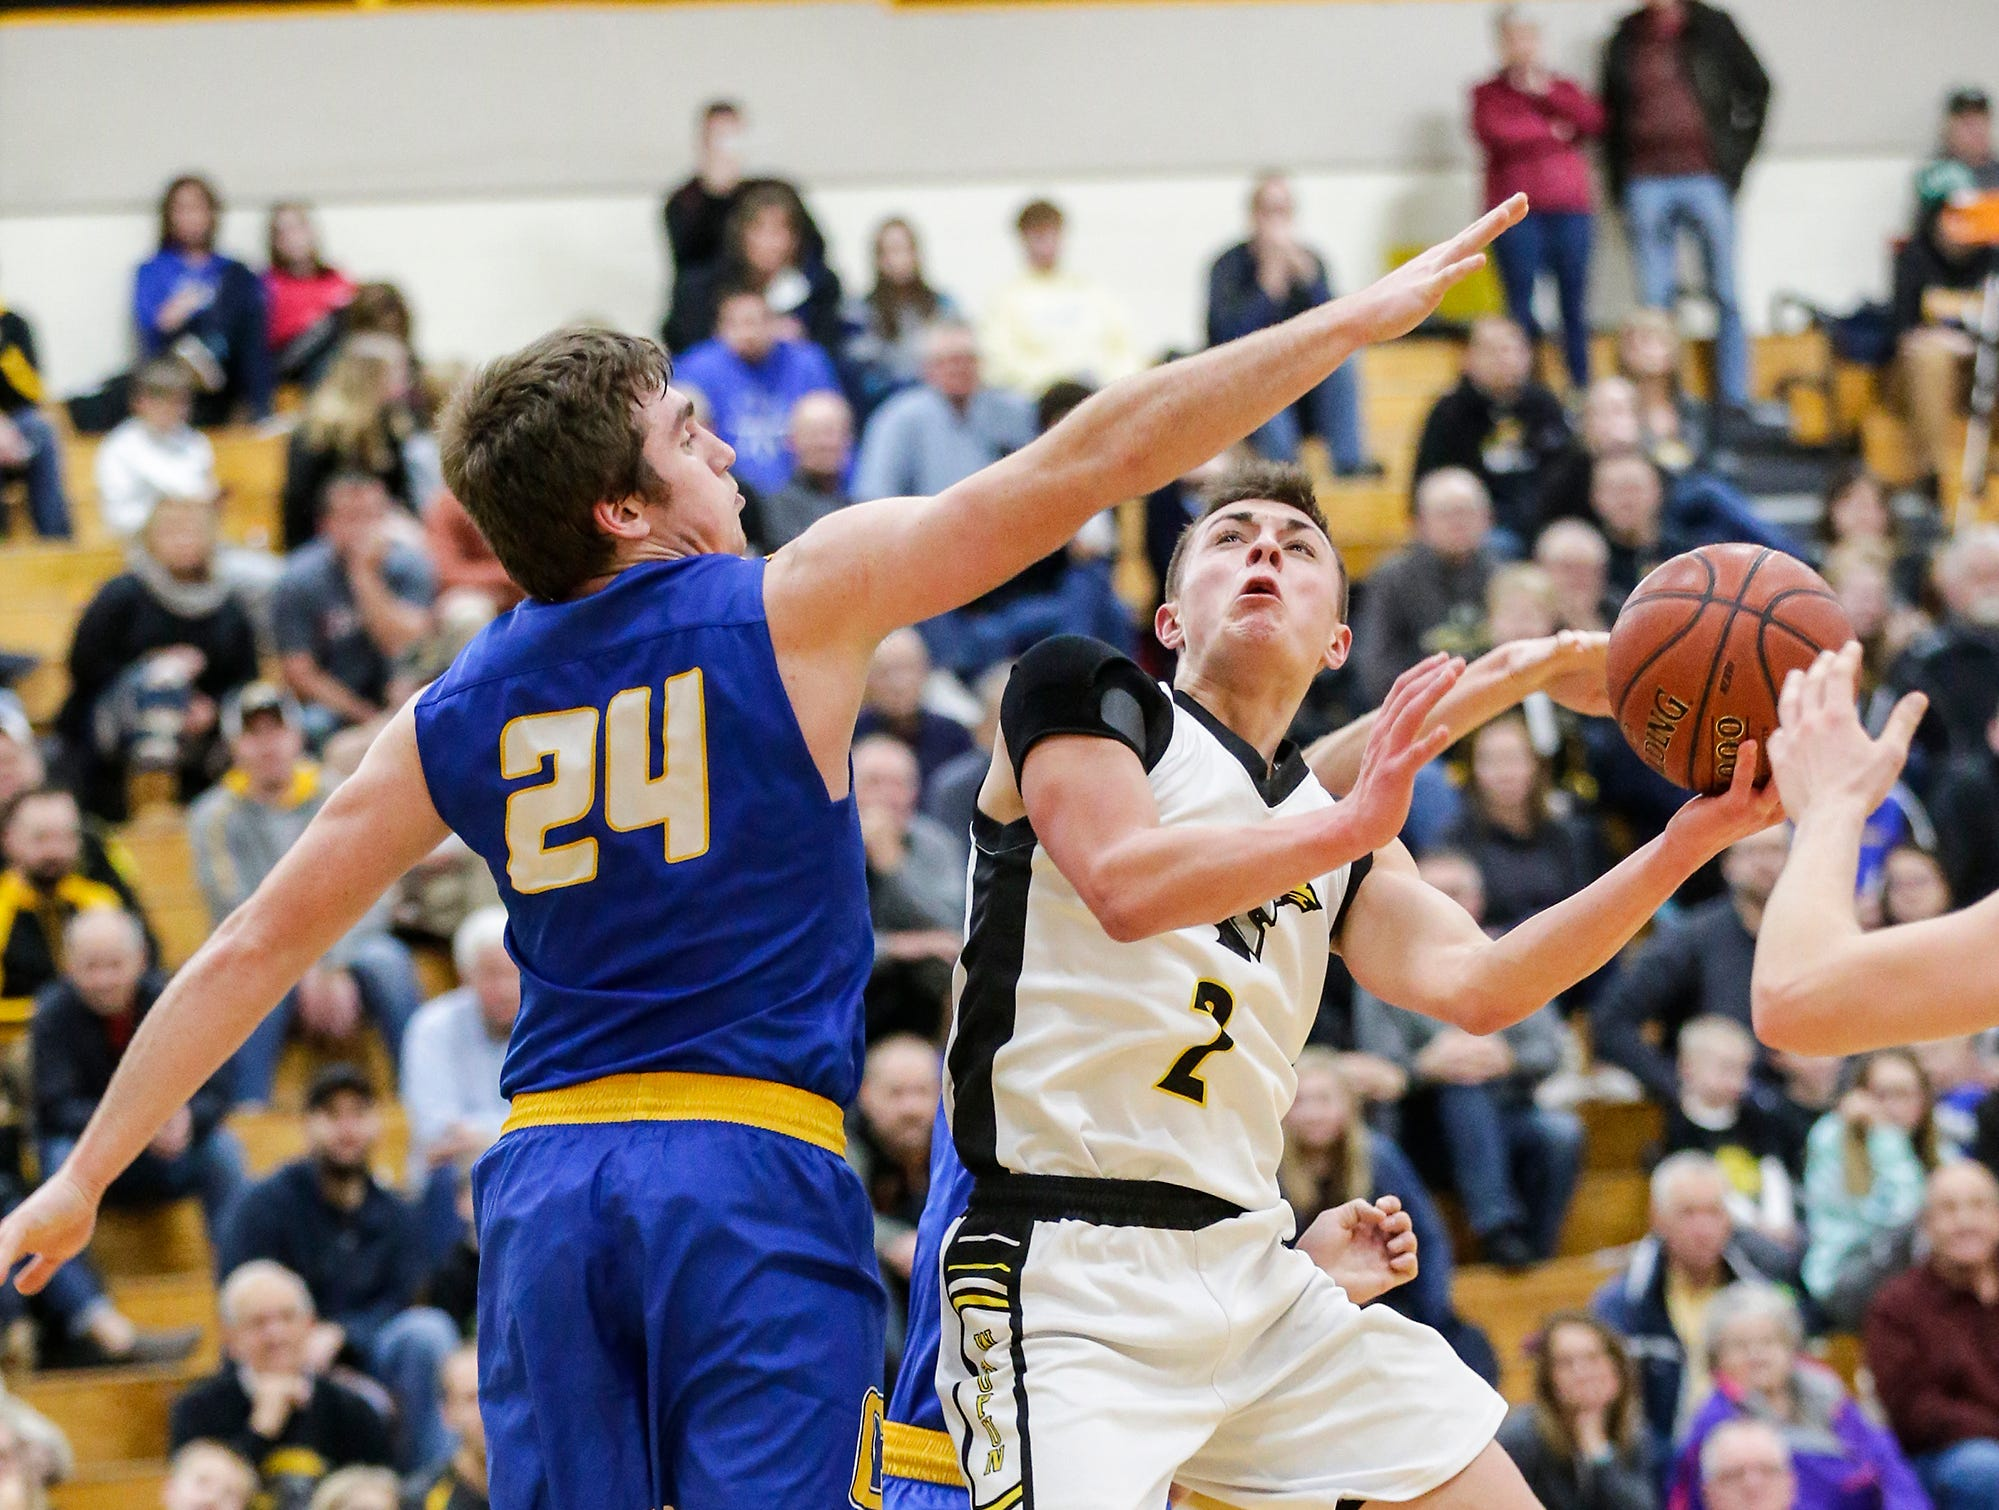 Waupun High School boys basketball's Trevor VandeZande goes up for a basket against Campbellsport High School's Nicholas Narges during their game Friday, December 14, 2018 in Waupun. Waupun won the game 64-33. Doug Raflik/USA TODAY NETWORK-Wisconsin